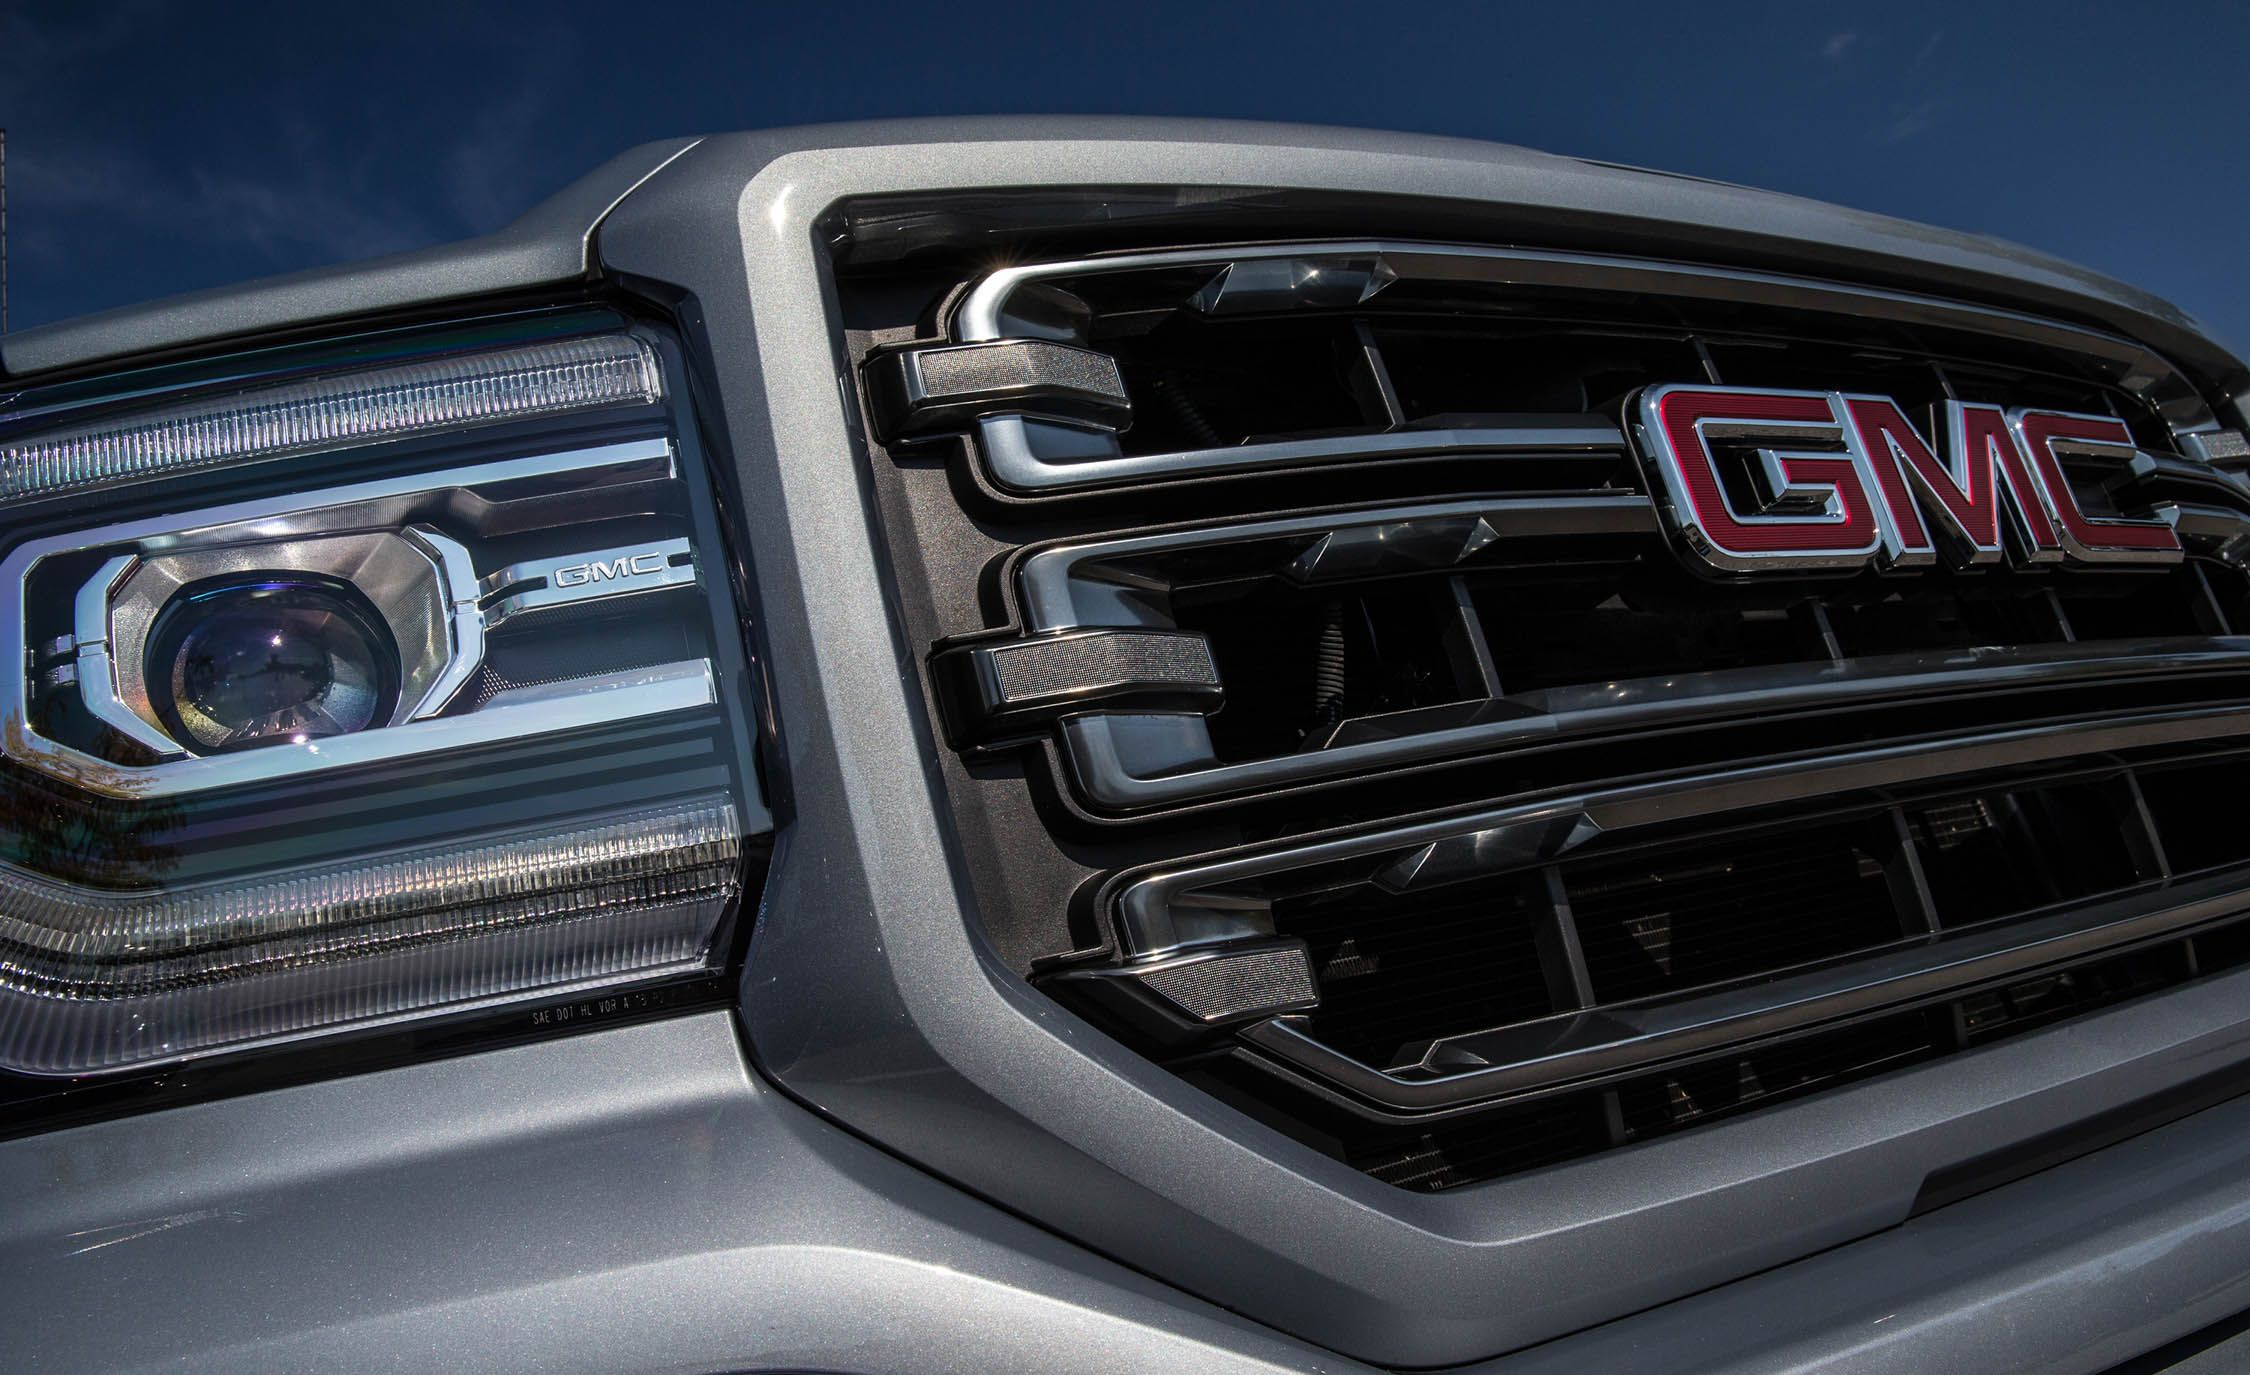 Chevrolet Gmc Trying Again With Silverado And Sierra Hybrid Pickups